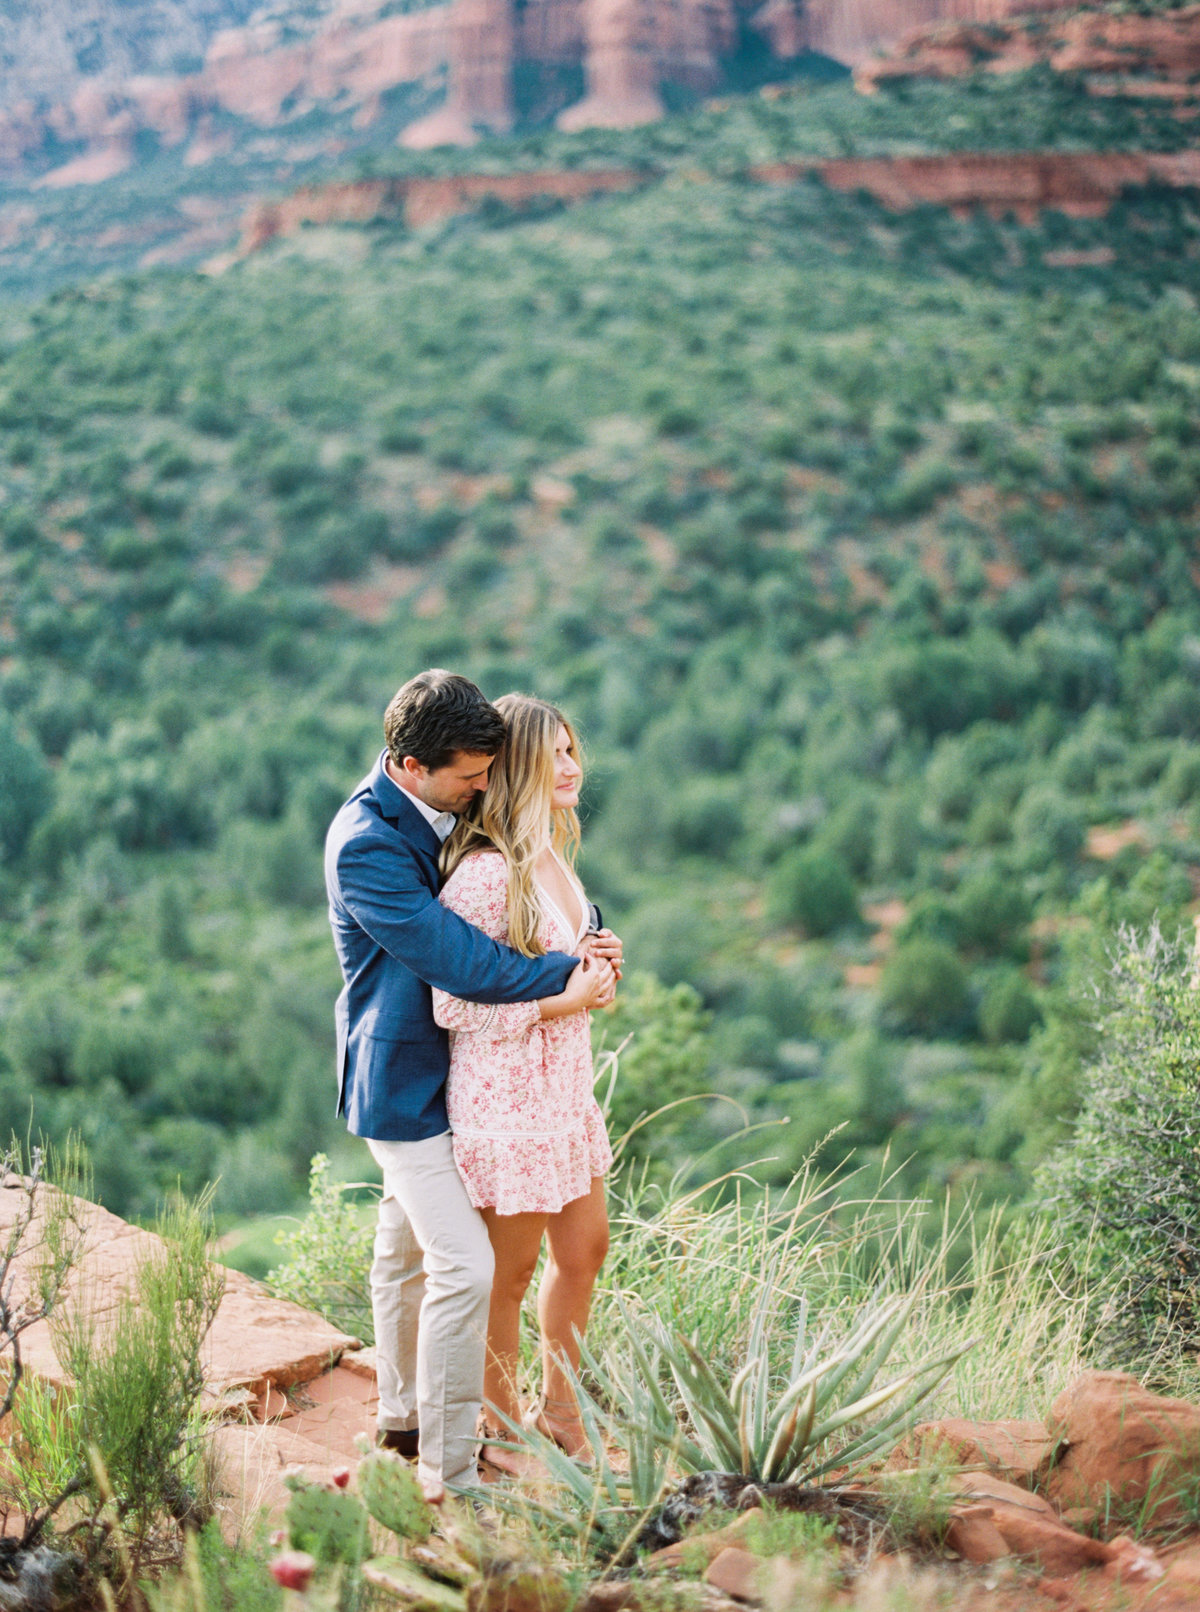 Sedona Arizona Engagement Session - Mary Claire Photography-11